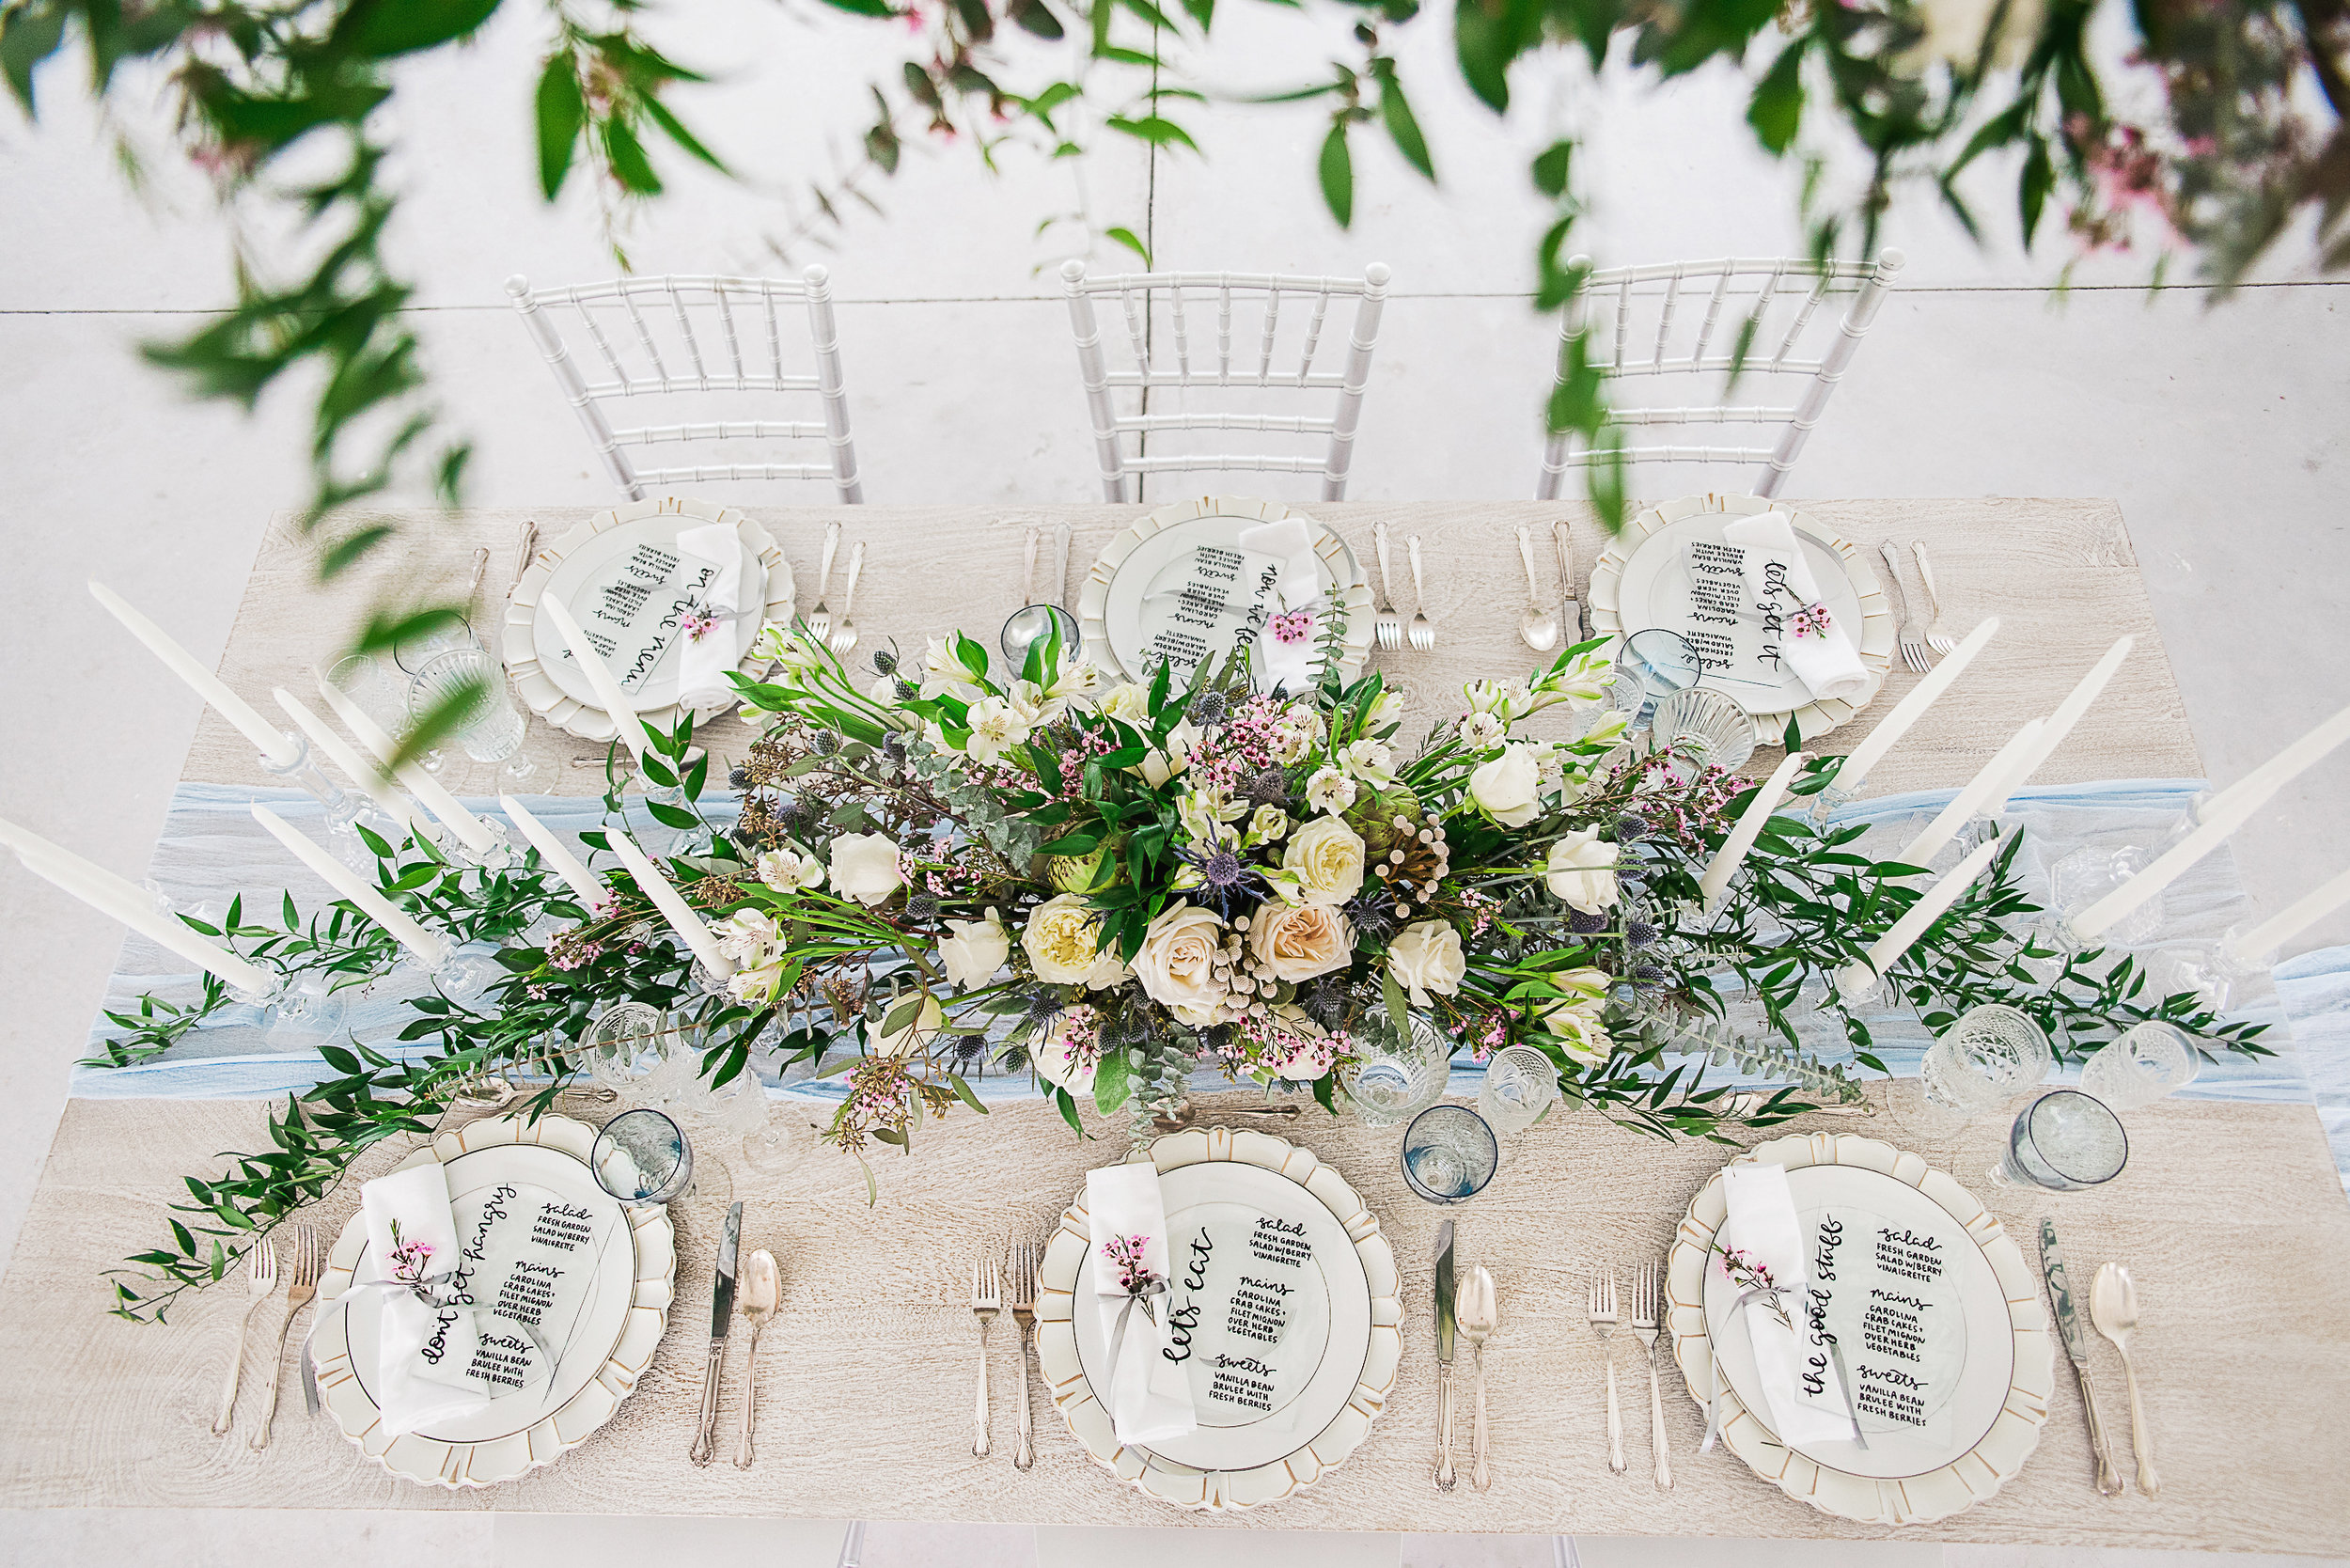 birds eye view wedding venue tablesetting photography floral centerpiece